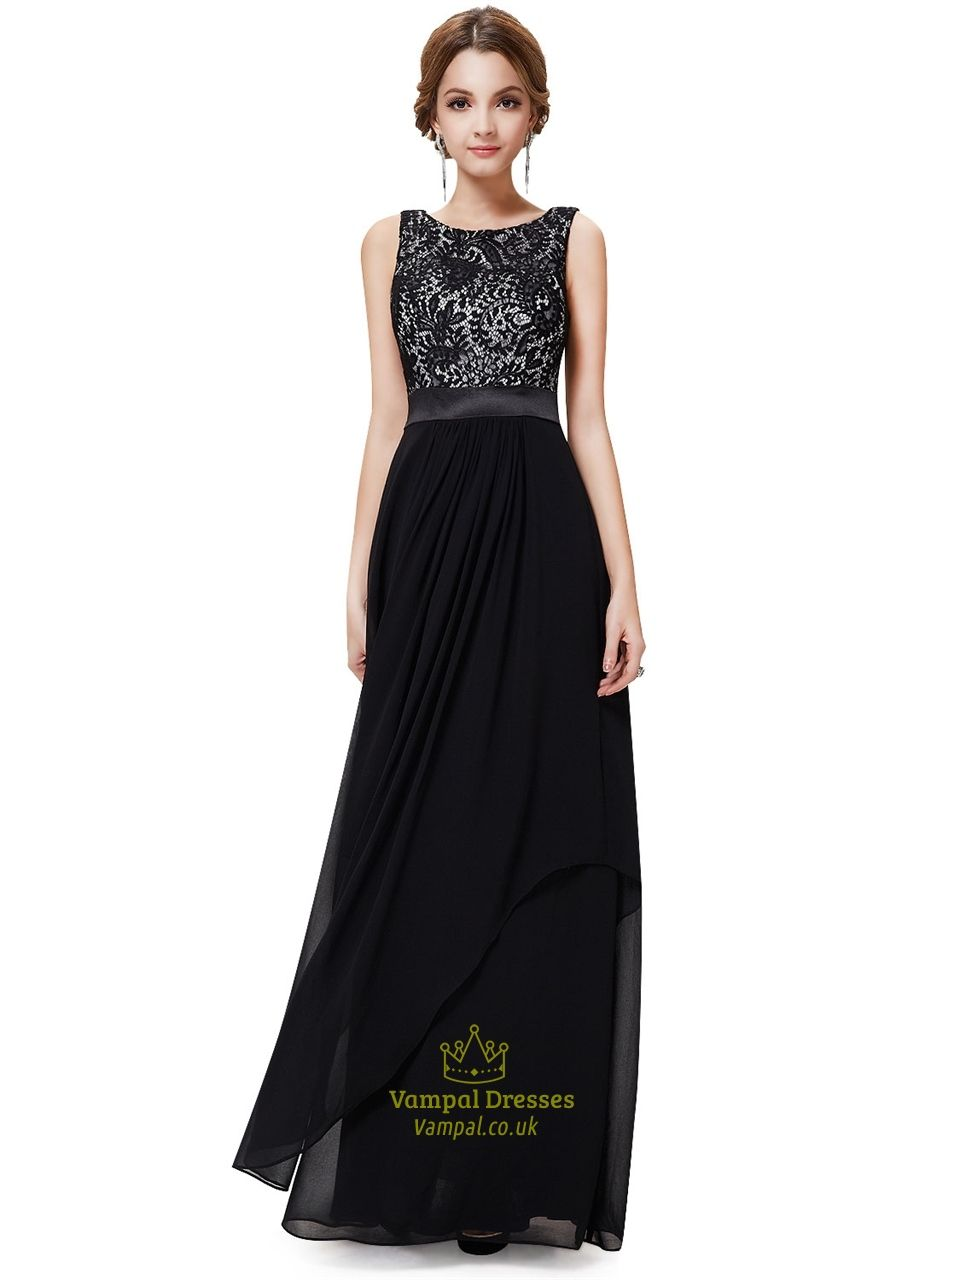 Black and white party dresses uk online